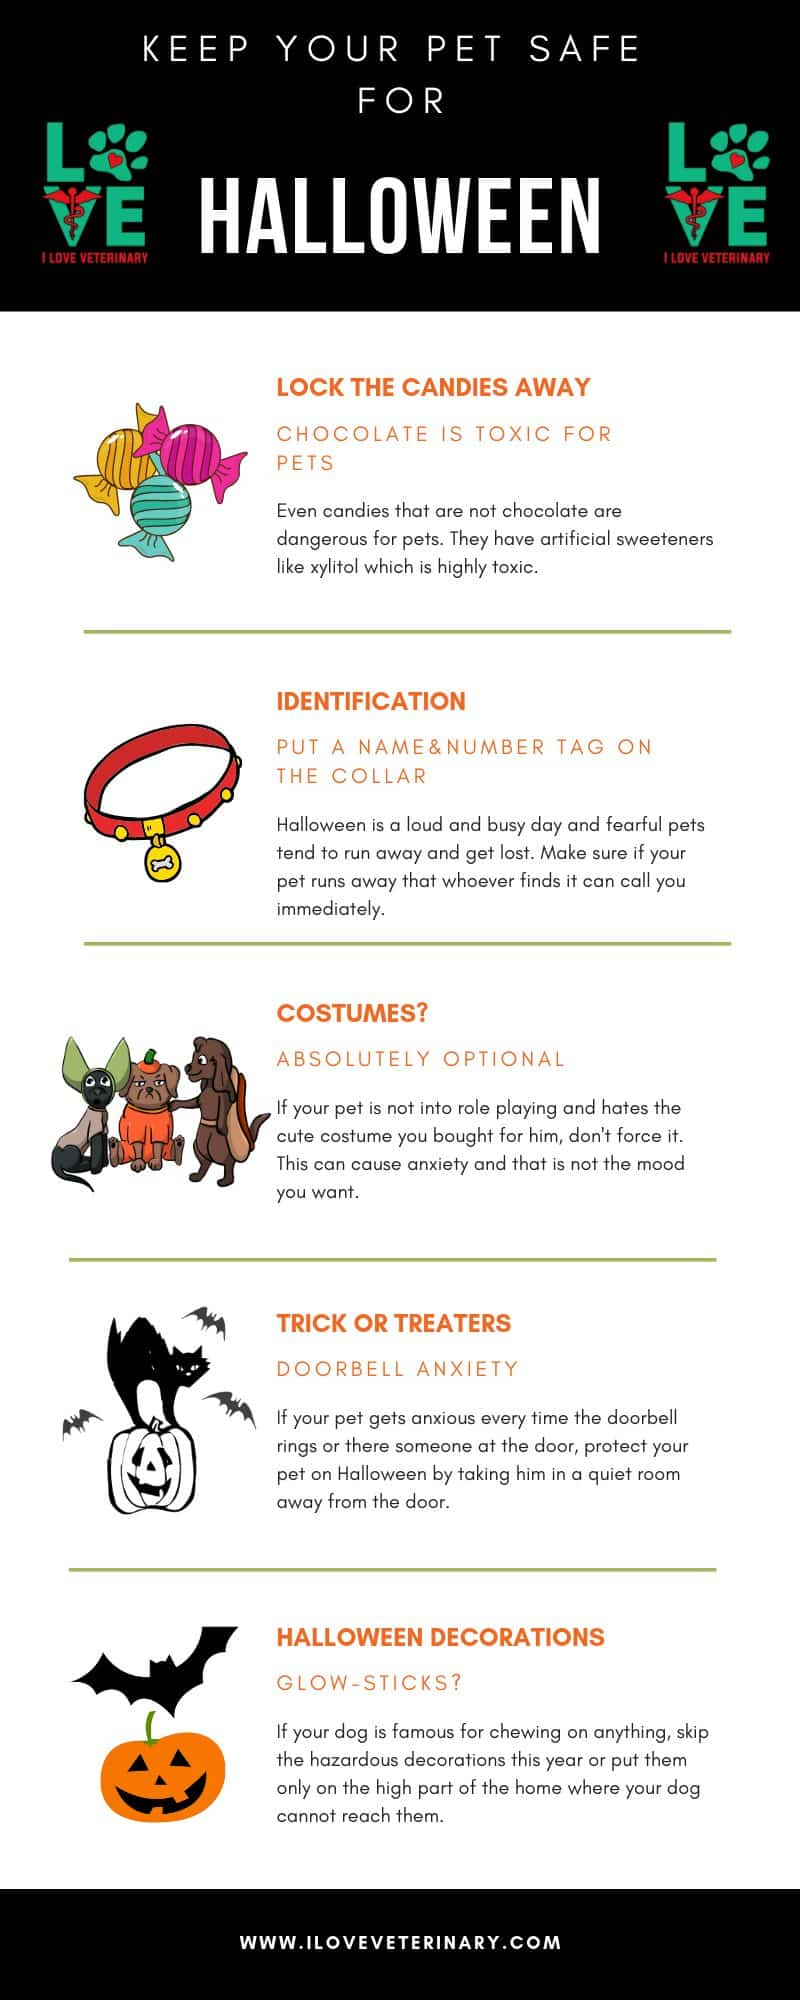 Keep your pet safe for Halloween